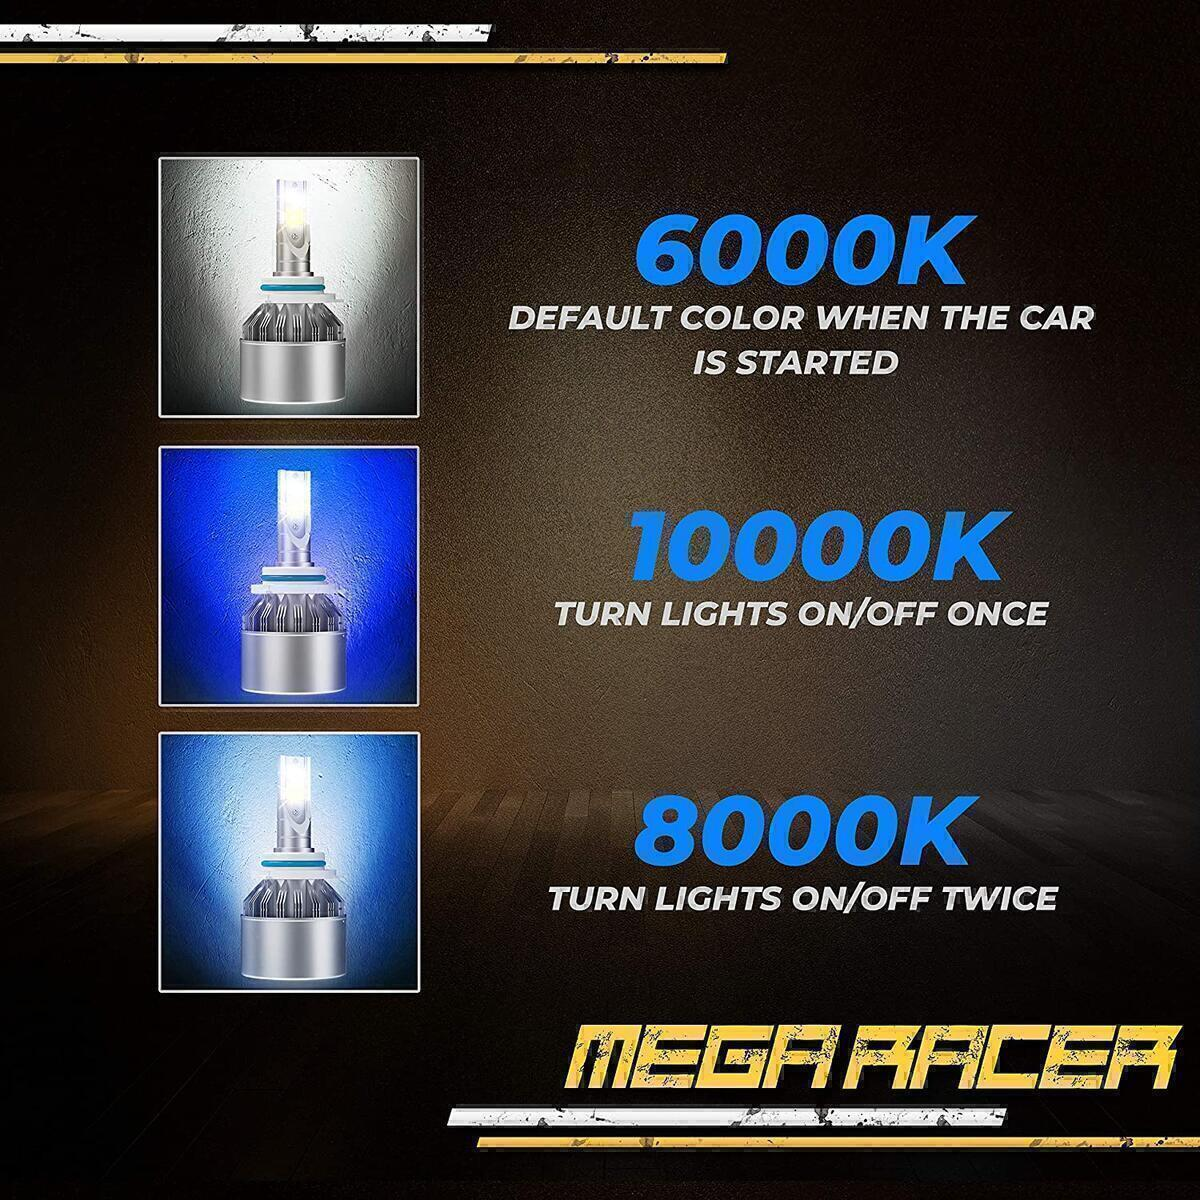 Mega Racer H10/HB3/9005 LED Headlight Bulbs, 3 Colors Changing Lights (6000K Diamond White, 8000K Ice Blue, 10000K Dark Blue) for High Beam/Low Beam/Fog Lights, 50W 8000 Lumens COB IP68, Pack of 2